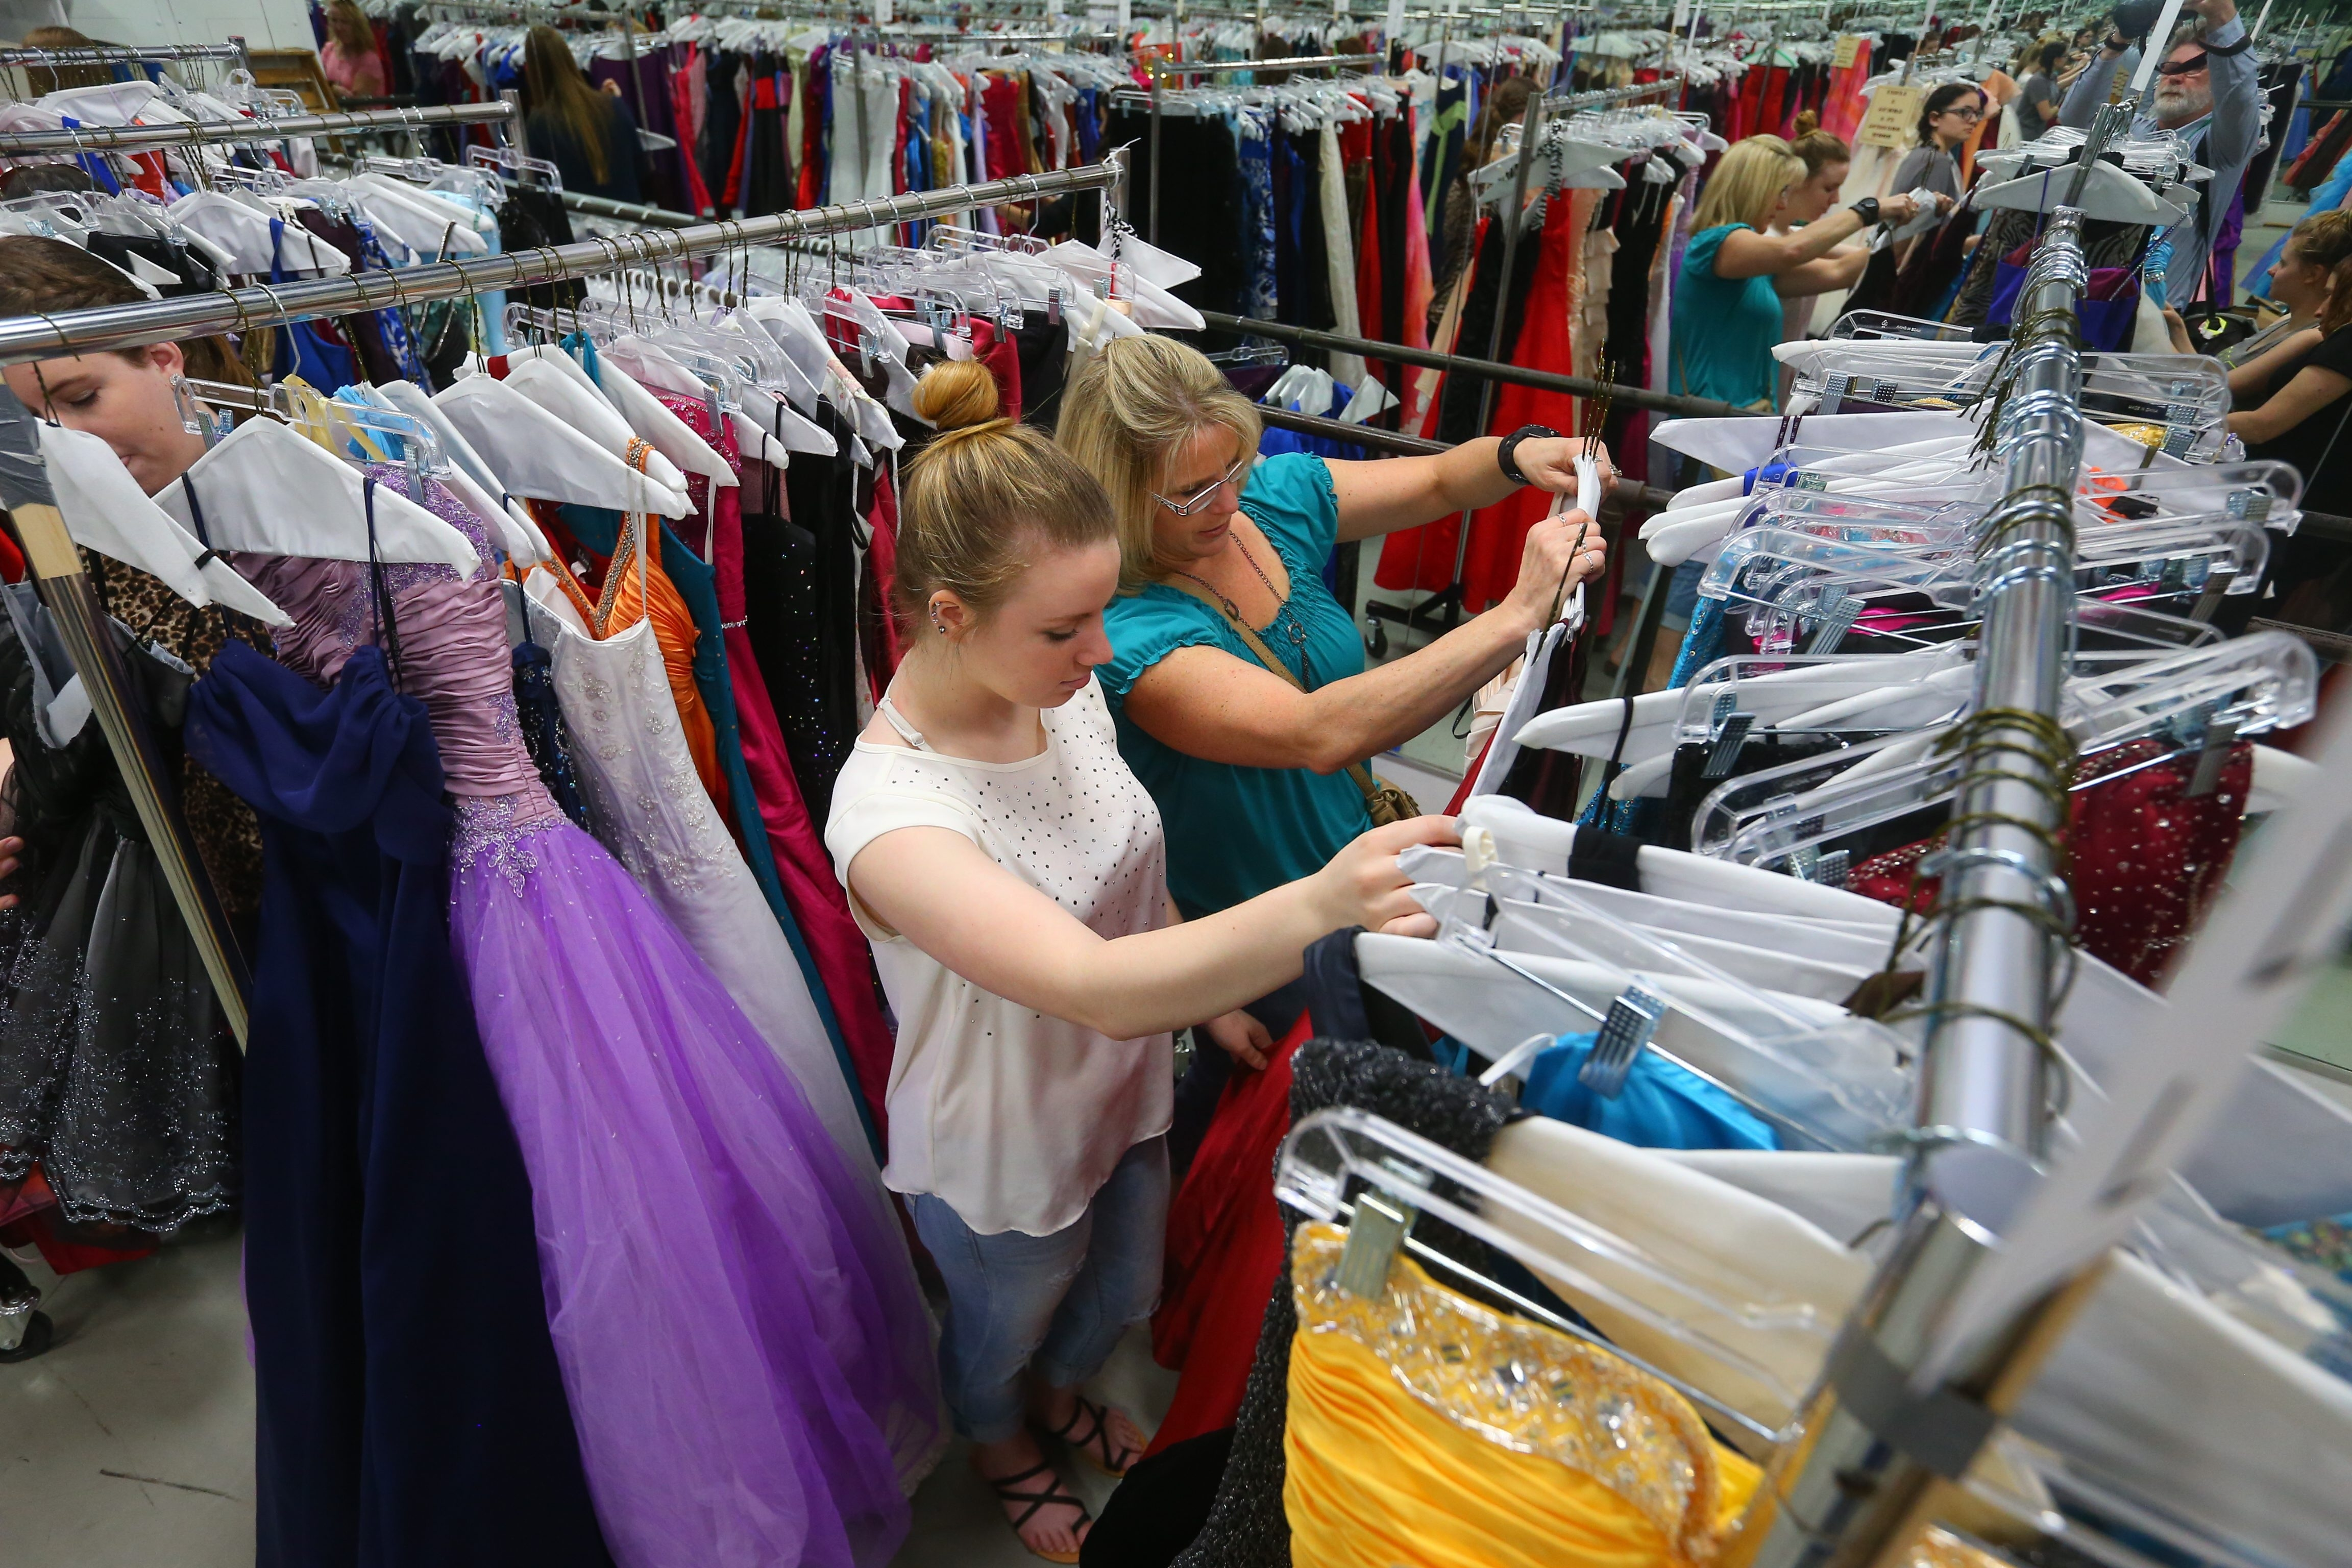 Julie Ambrose, of Hamburg, gets some help from her mother, Trish, picking out a free prom dress at Performing Arts Dance Academy in the Village of Hamburg on Sunday. More than 1,000 dresses – the most ever – were donated this year for the event.